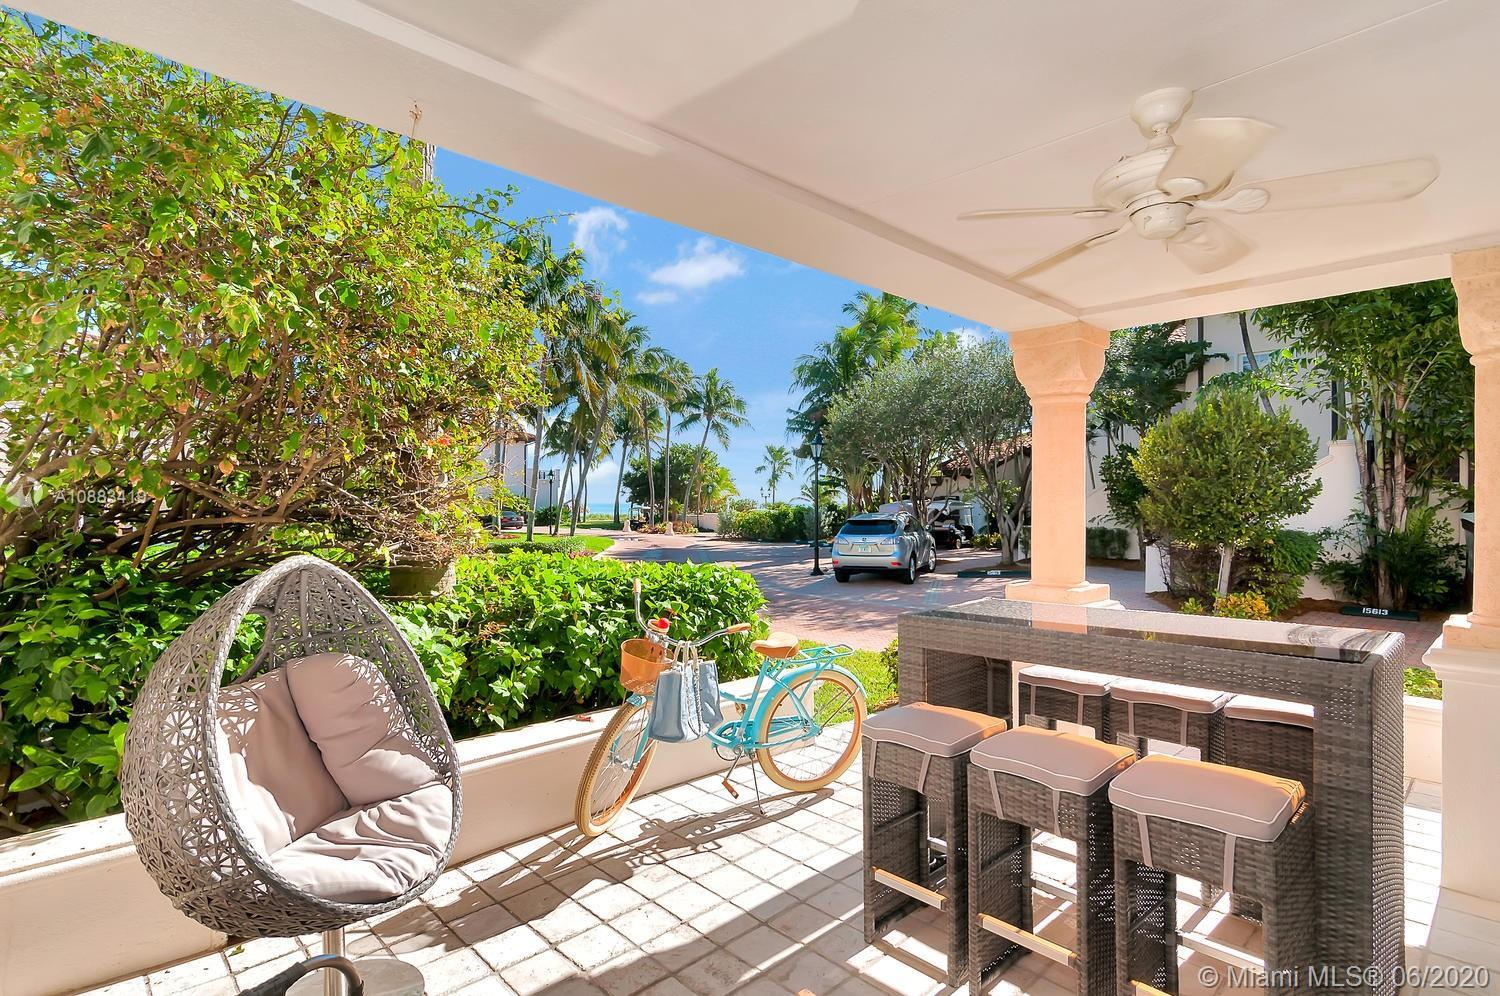 This spectacular Seaside Villa ground floor unit on Fisher Island is just steps away from the ocean